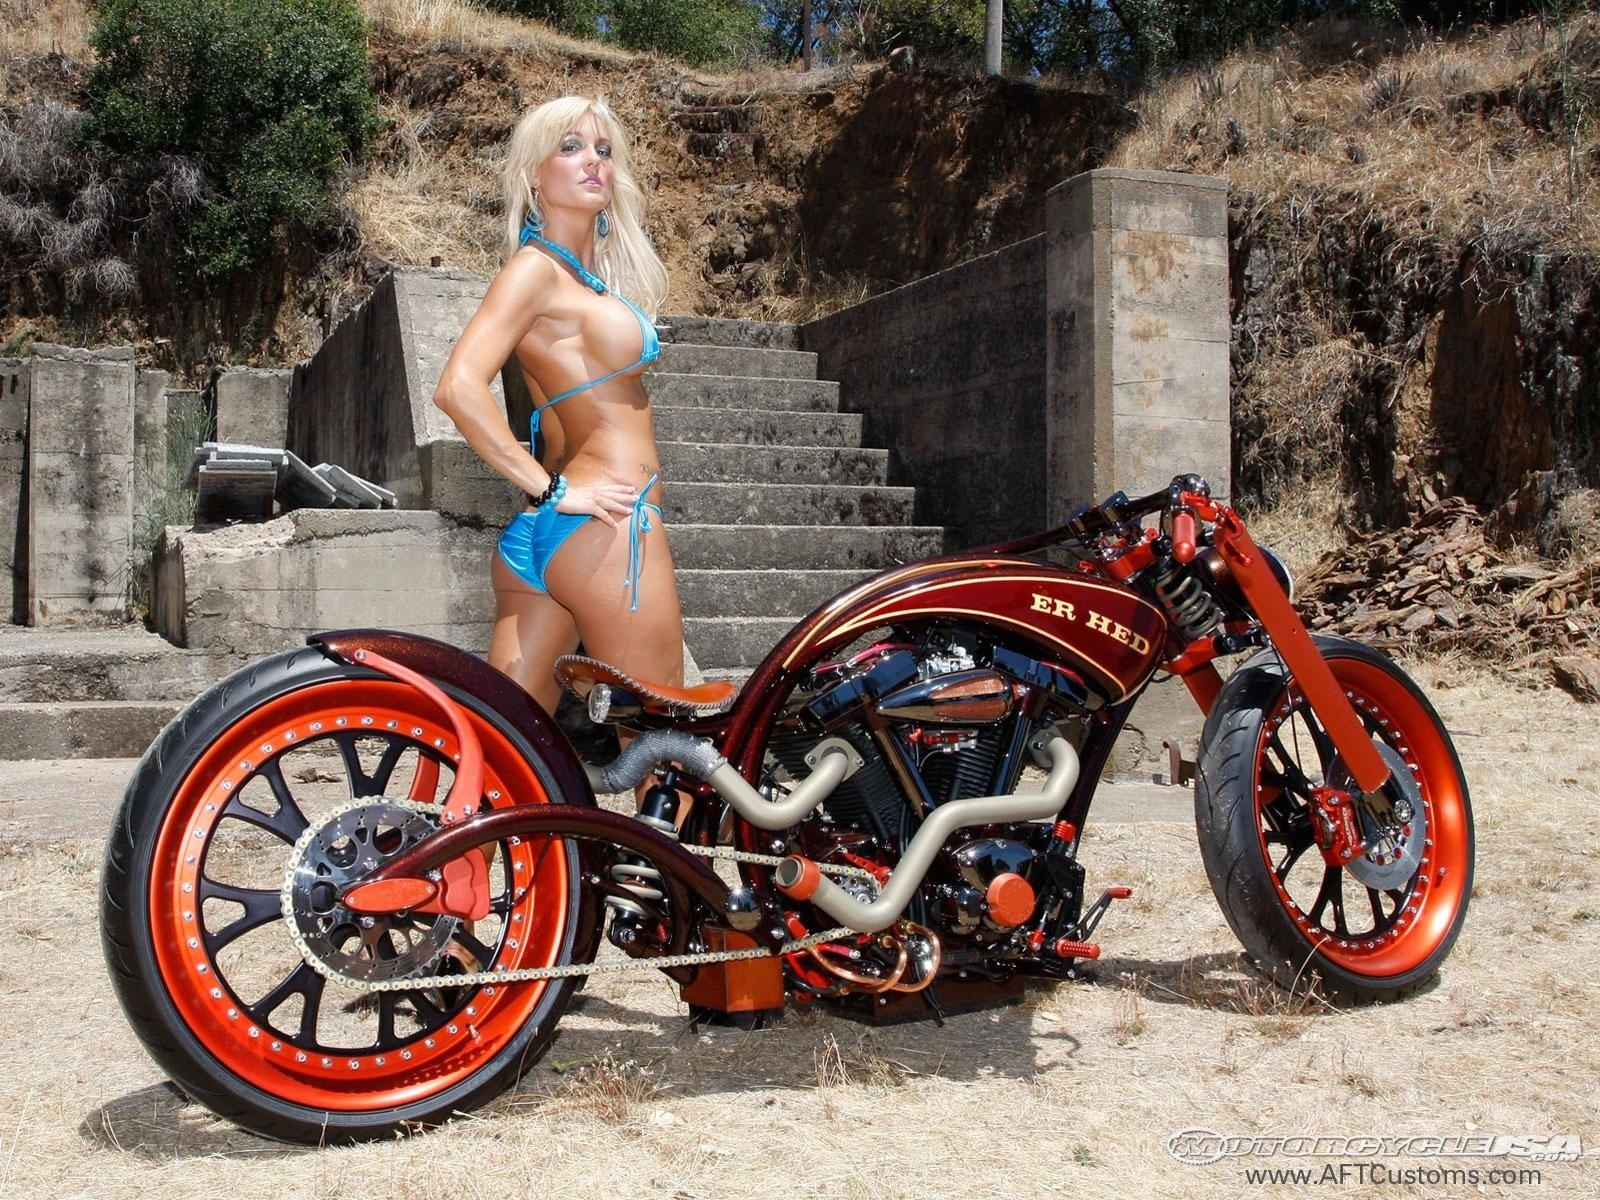 Custom Chopper Motorcycles and Girls 1600 x 1200 · 681 kB · jpeg